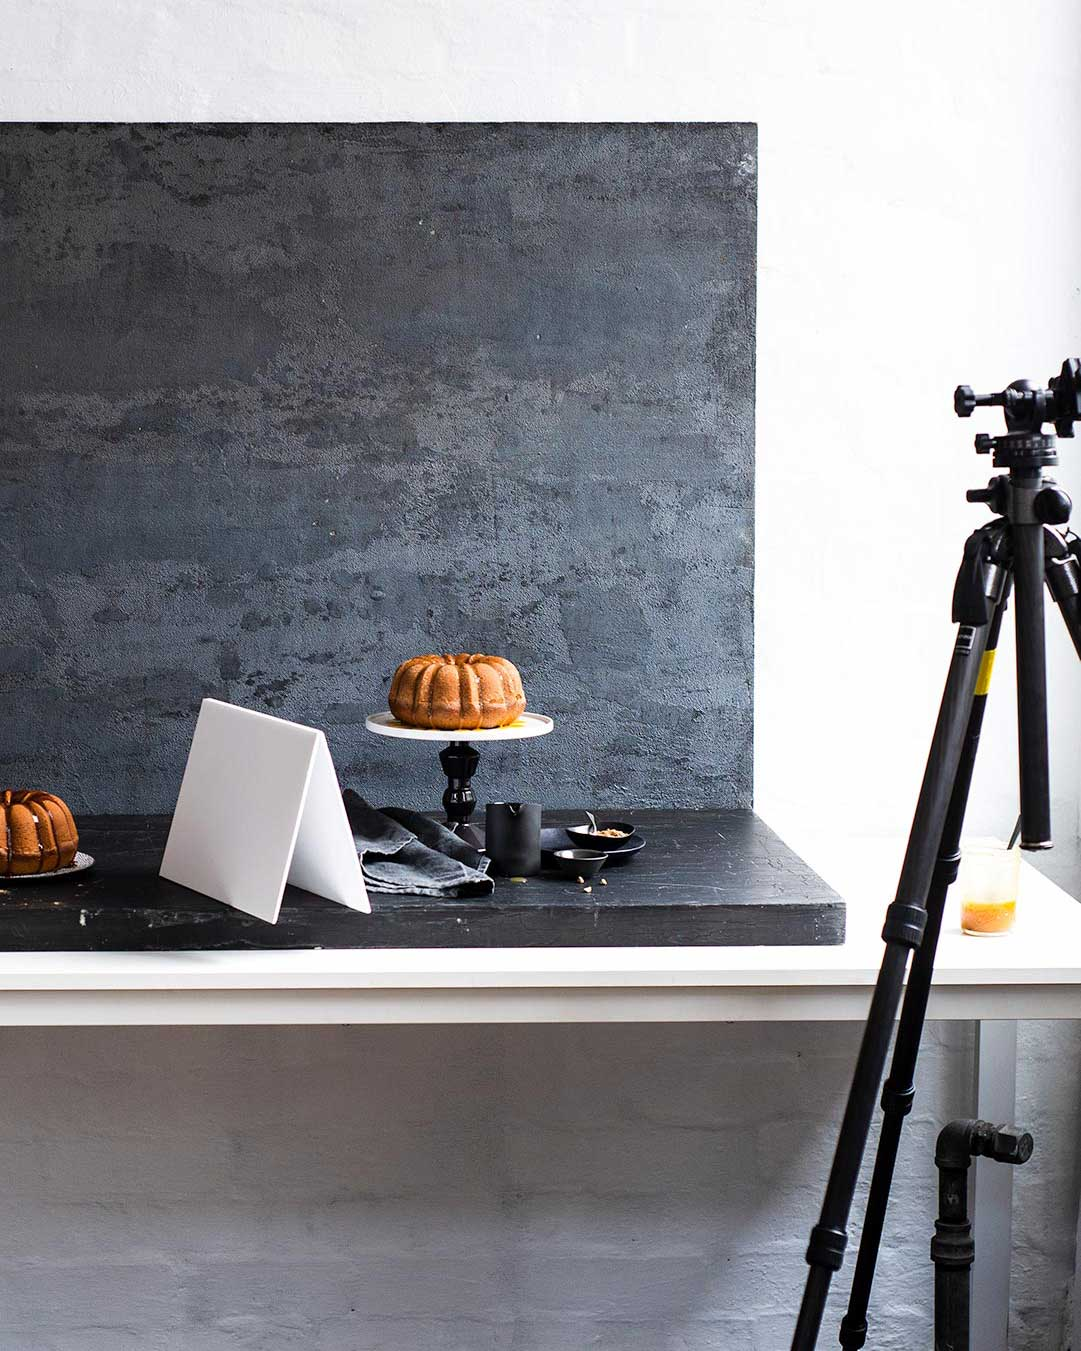 Behind the scenes shot of food photography with a tripod and bundt cake